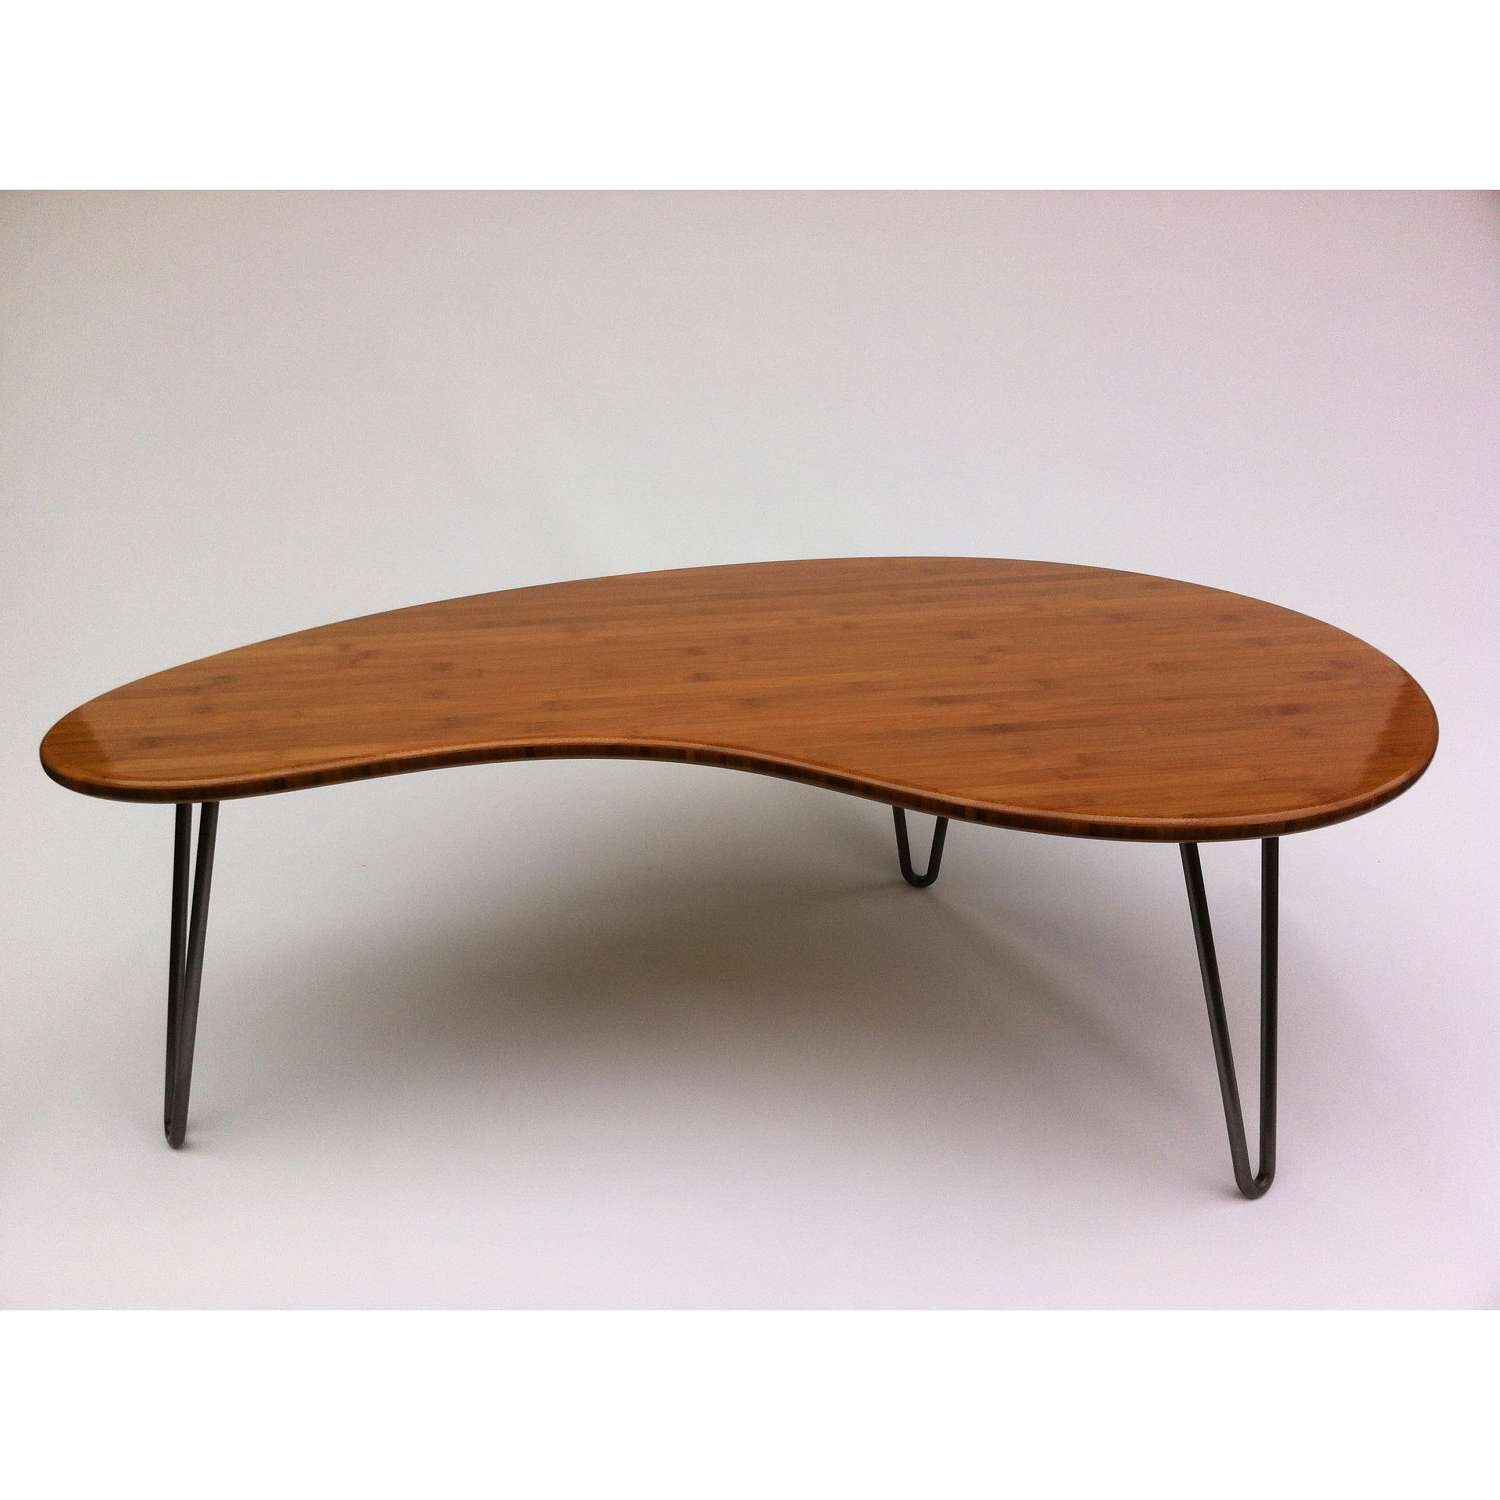 Newest Wood Modern Coffee Tables Inside Coffee Tables : Coffee Table Target Boomerang Danish Modern Square (Gallery 17 of 20)